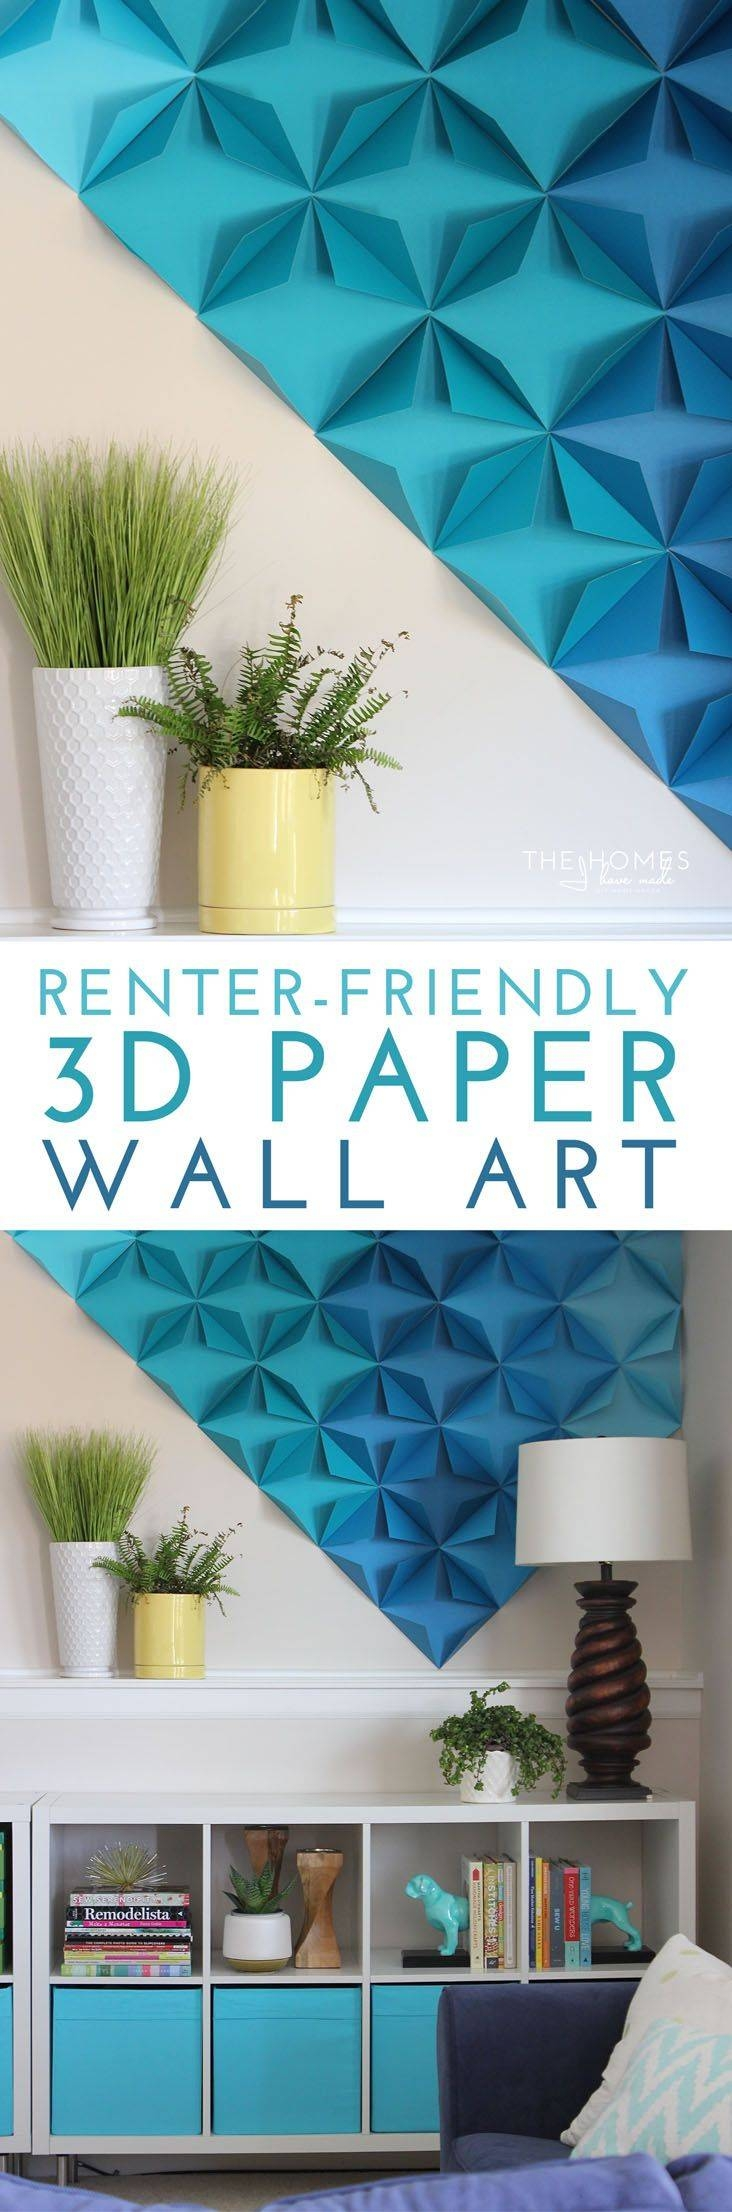 25+ Unique 3D Wall Art Ideas On Pinterest | Butterfly Wall, Diy Regarding Most Recent 3D Wall Art With Paper (View 2 of 20)